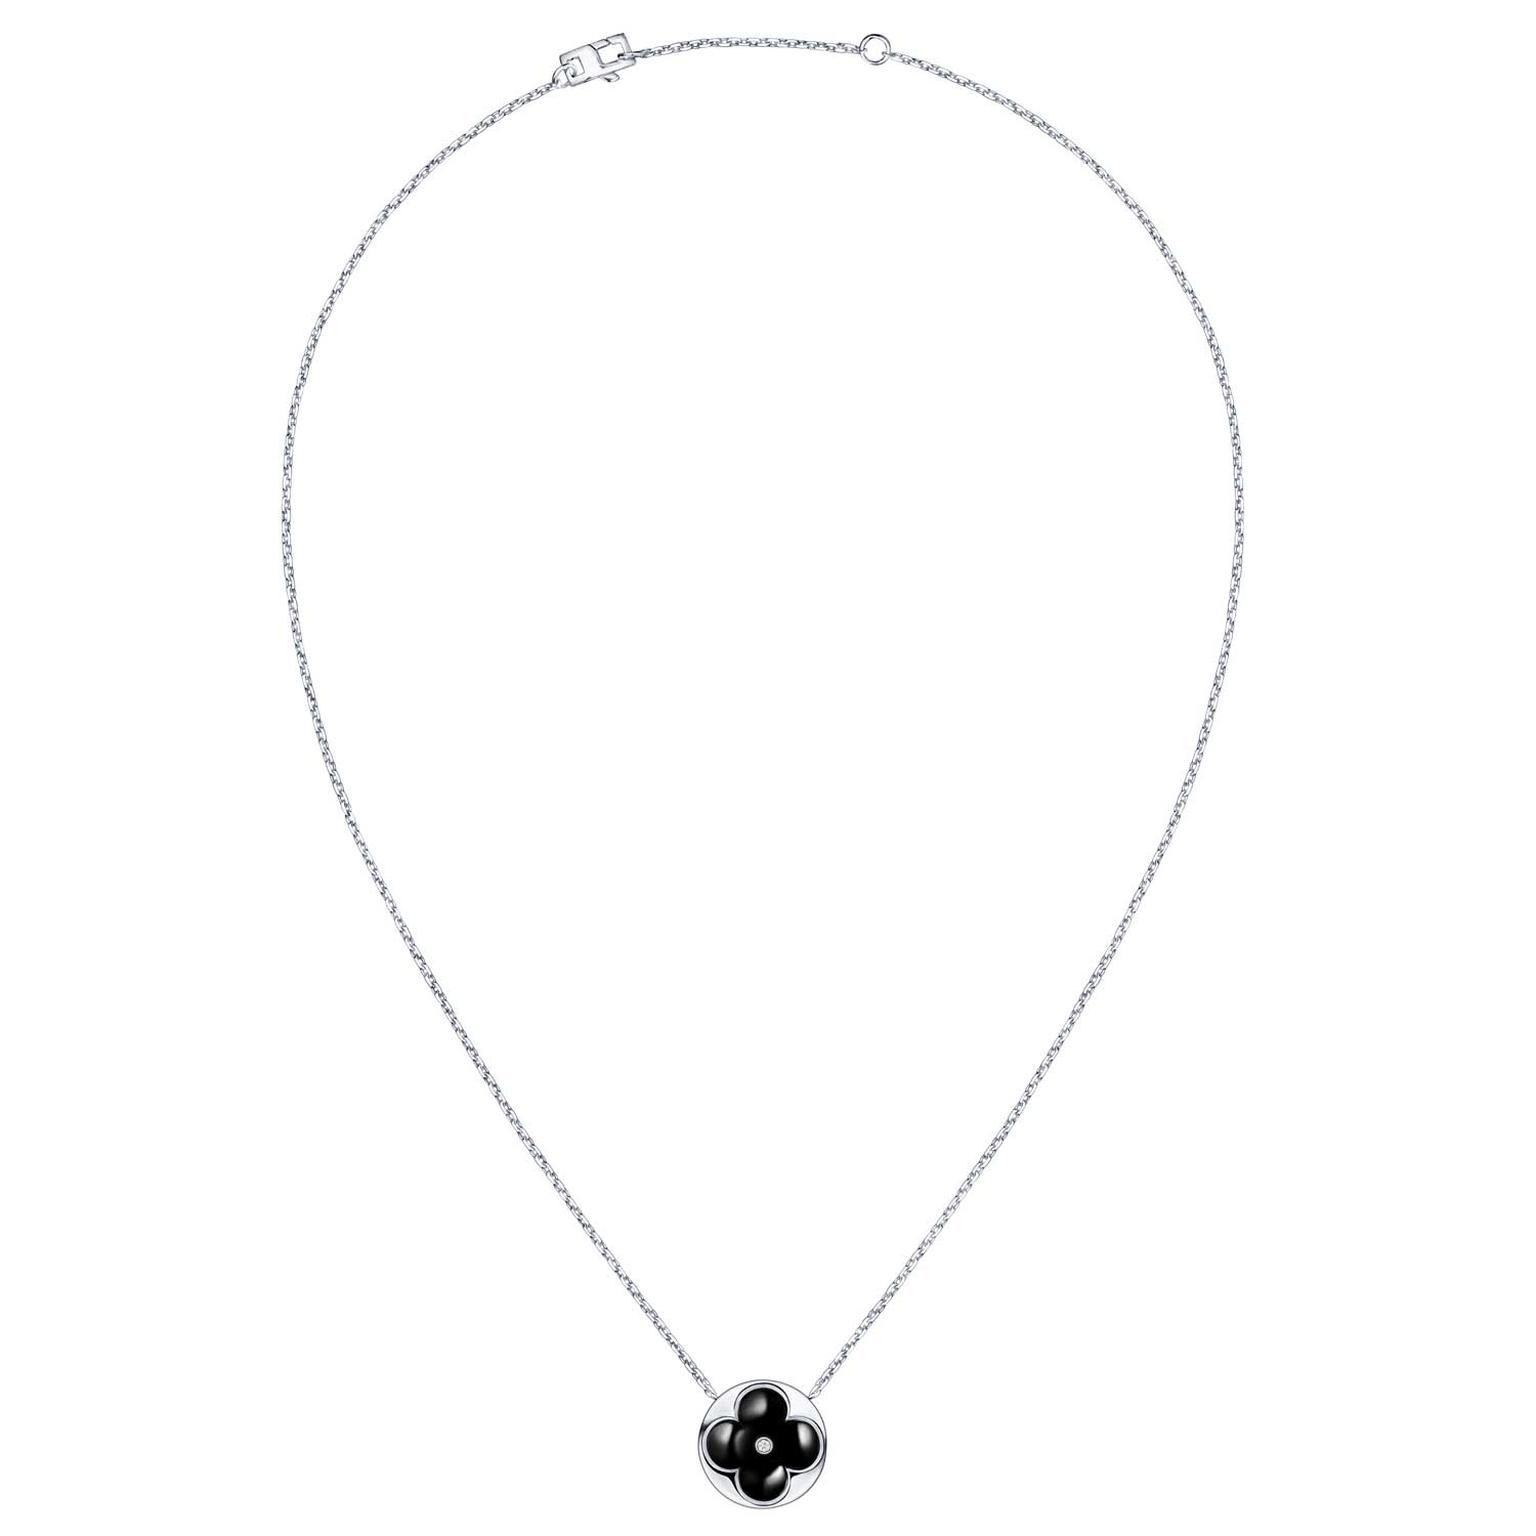 Louis Vuitton Onyx Diamond Blossom necklace